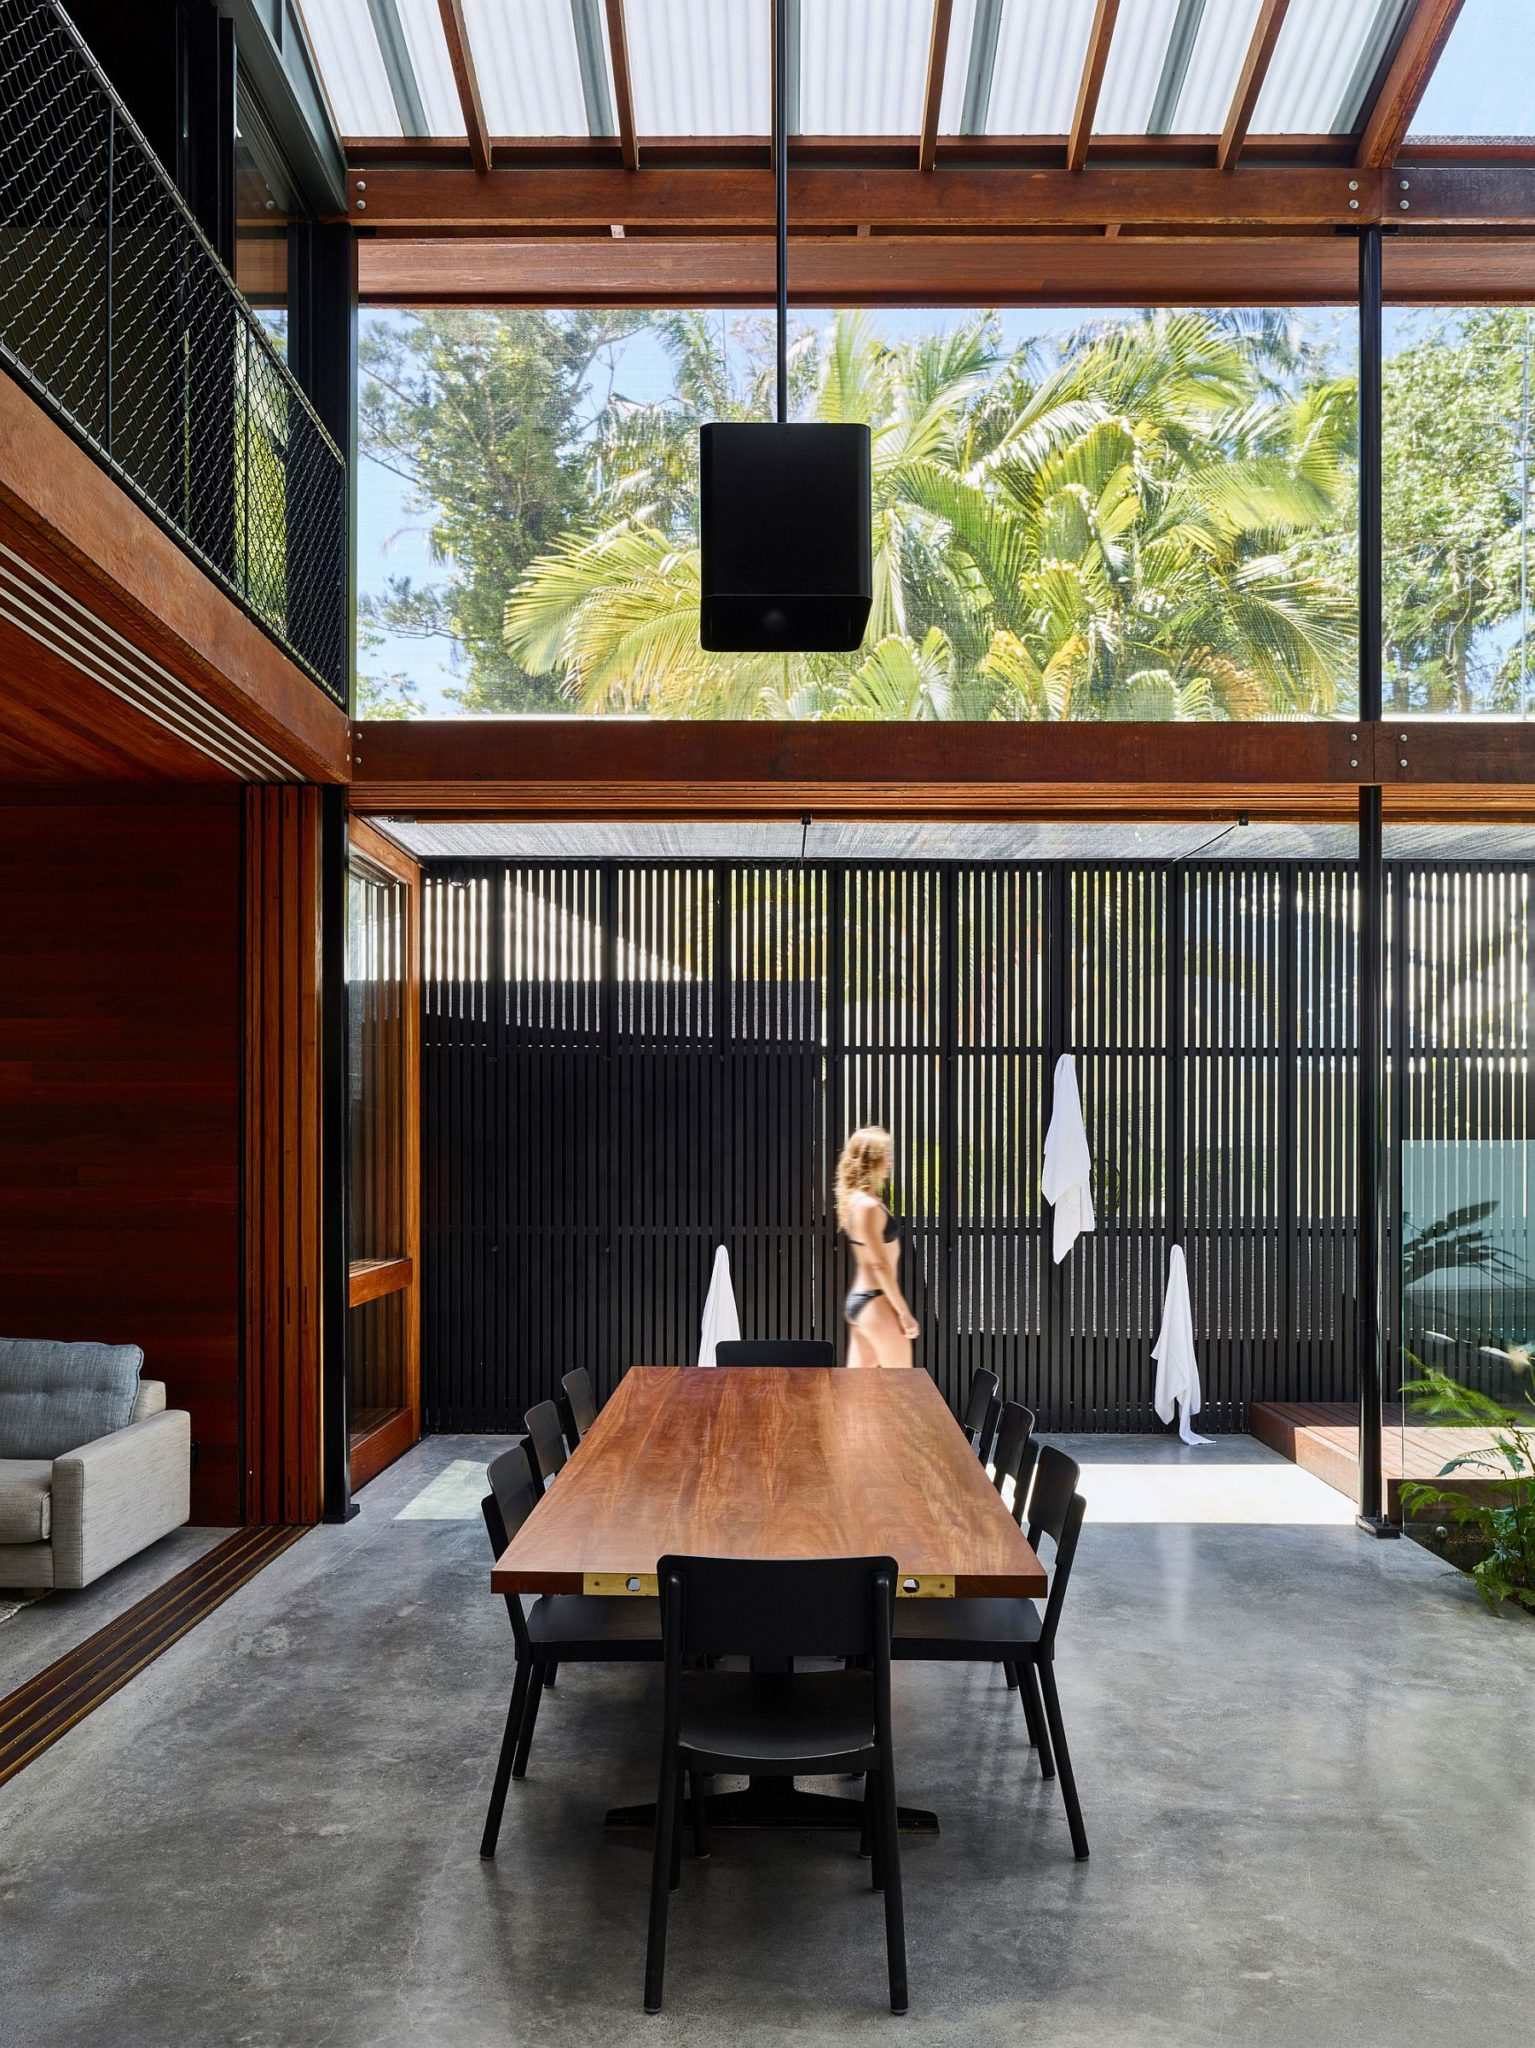 Greenery outside becomes a part of the open dining space